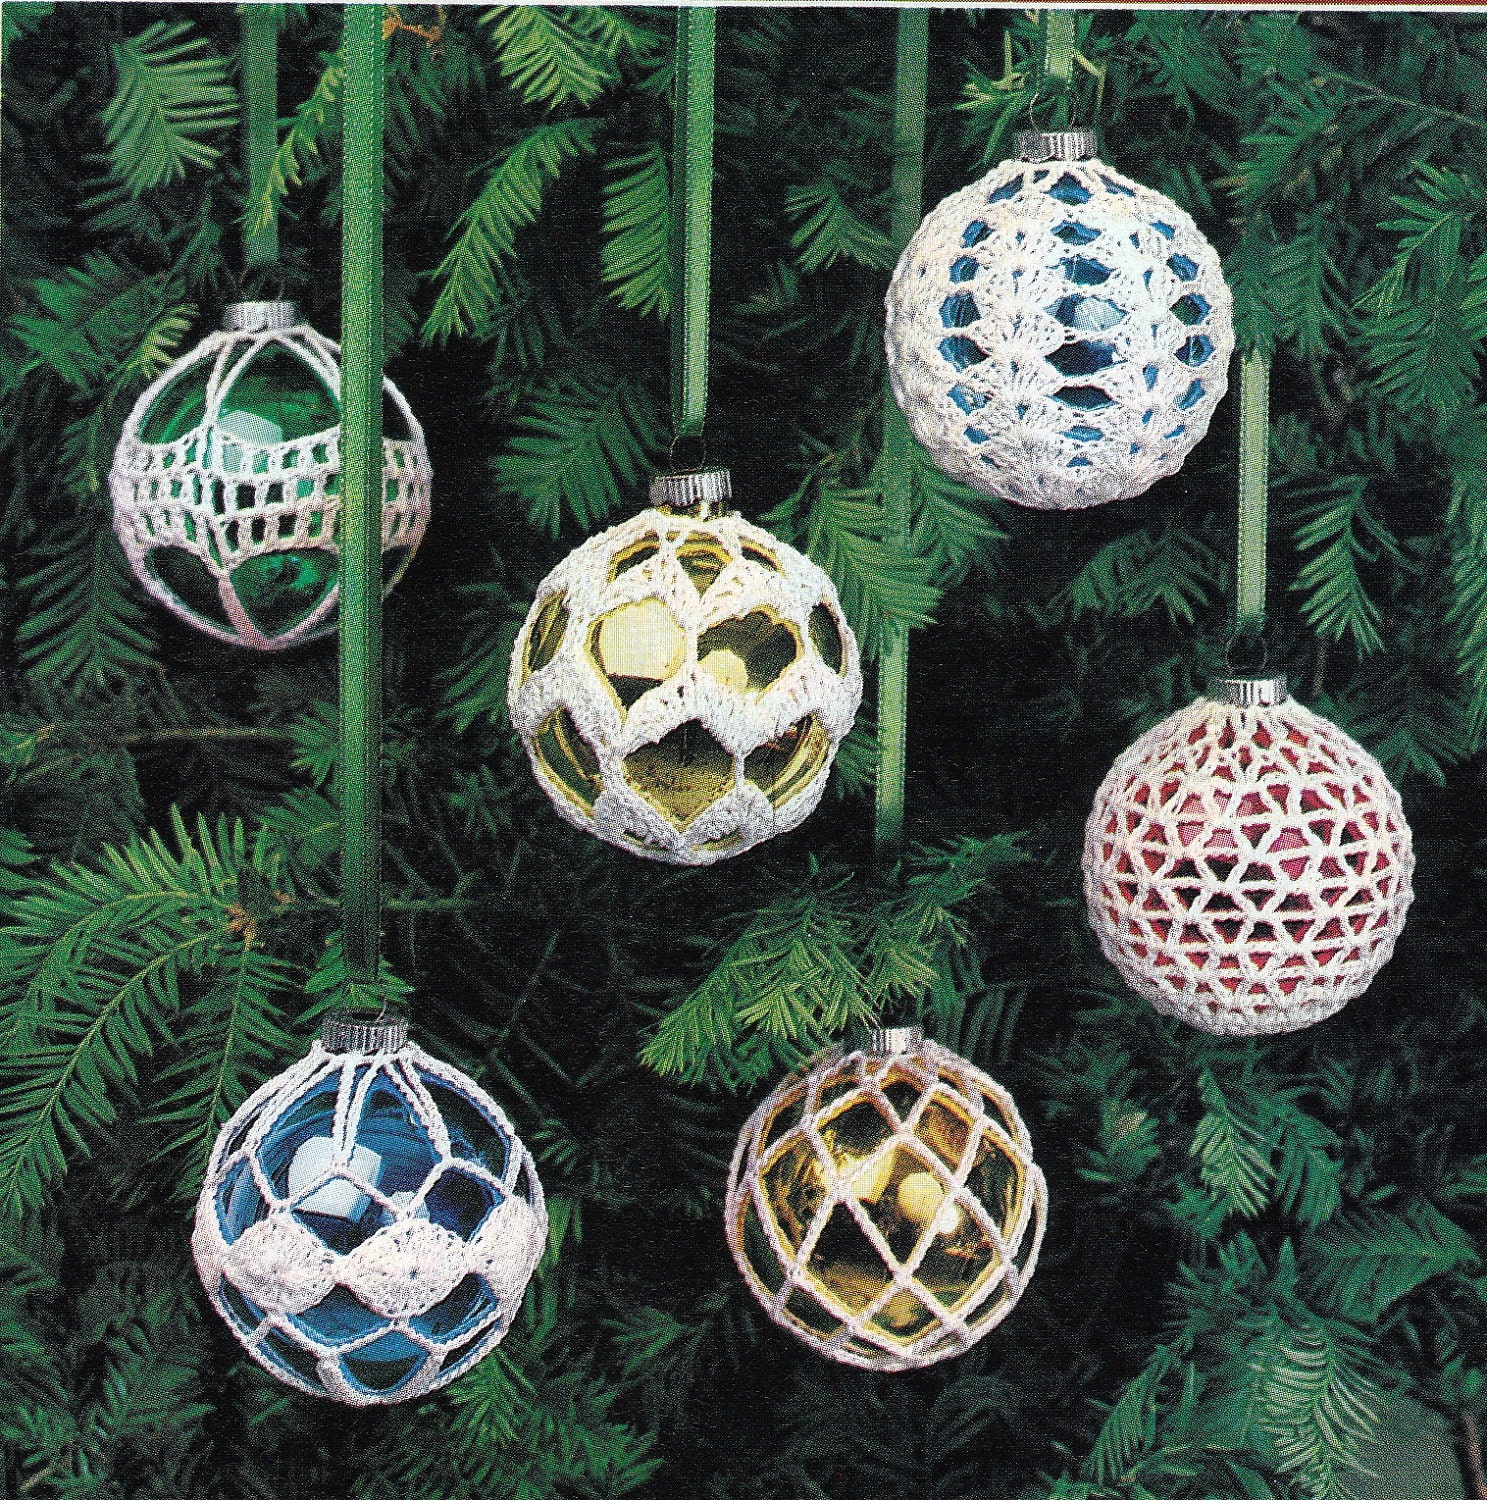 Free Thread Crochet Christmas Ornaments Patterns : Crochet Christmas Ornament Covers Vintage Crocheting PDF